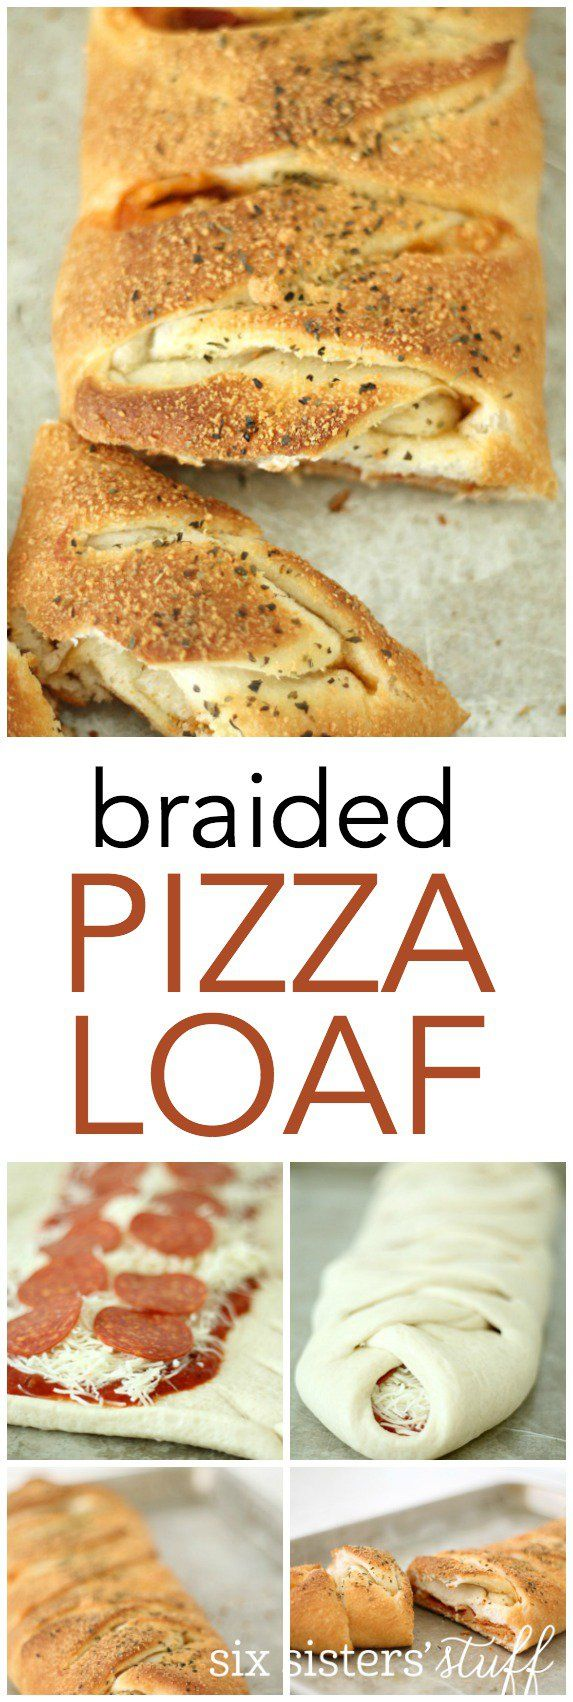 My family loves this Braided Pizza Loaf Recipe from SixSistersStuff.com! It's so easy to make and it tastes amazing!